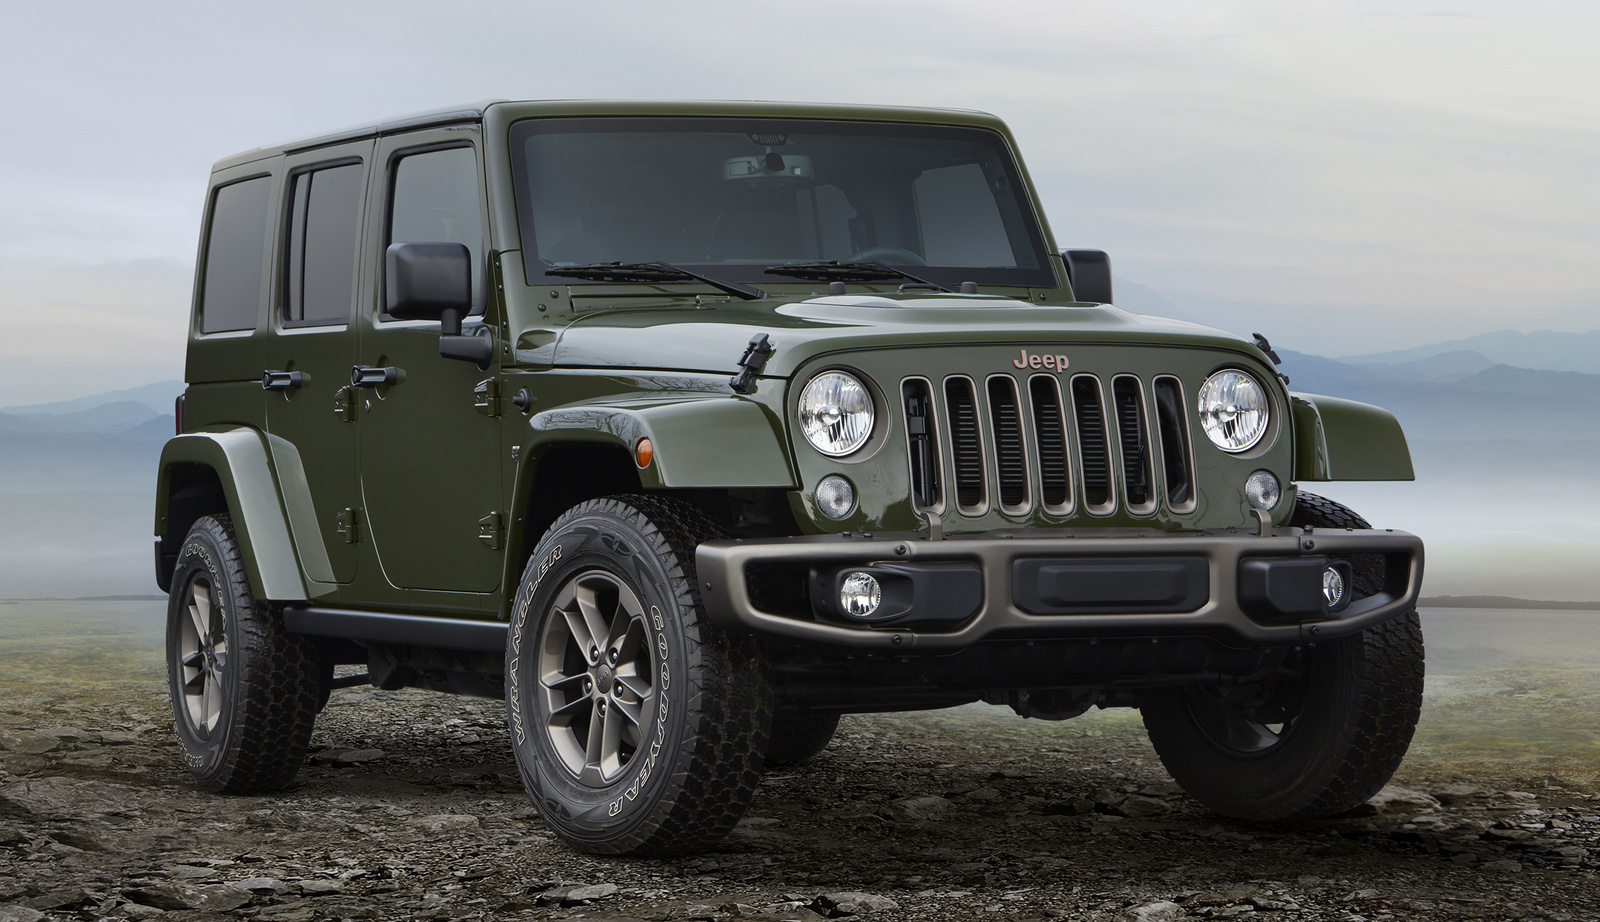 2016 Jeep Wrangler Unlimited   Review   CarGurus